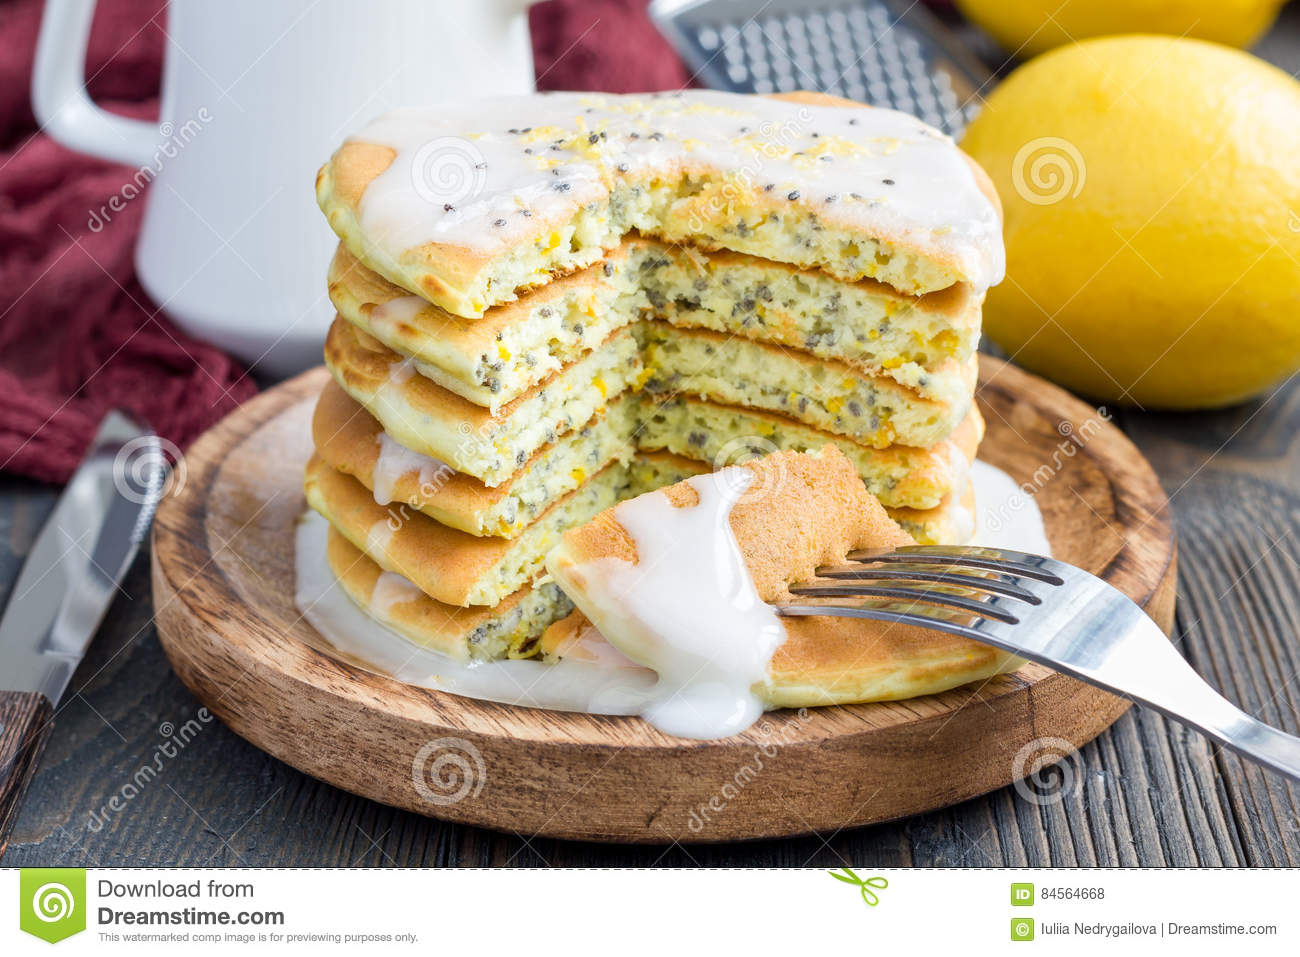 Lemon and chia seed pancakes with citrus glaze, horizontal